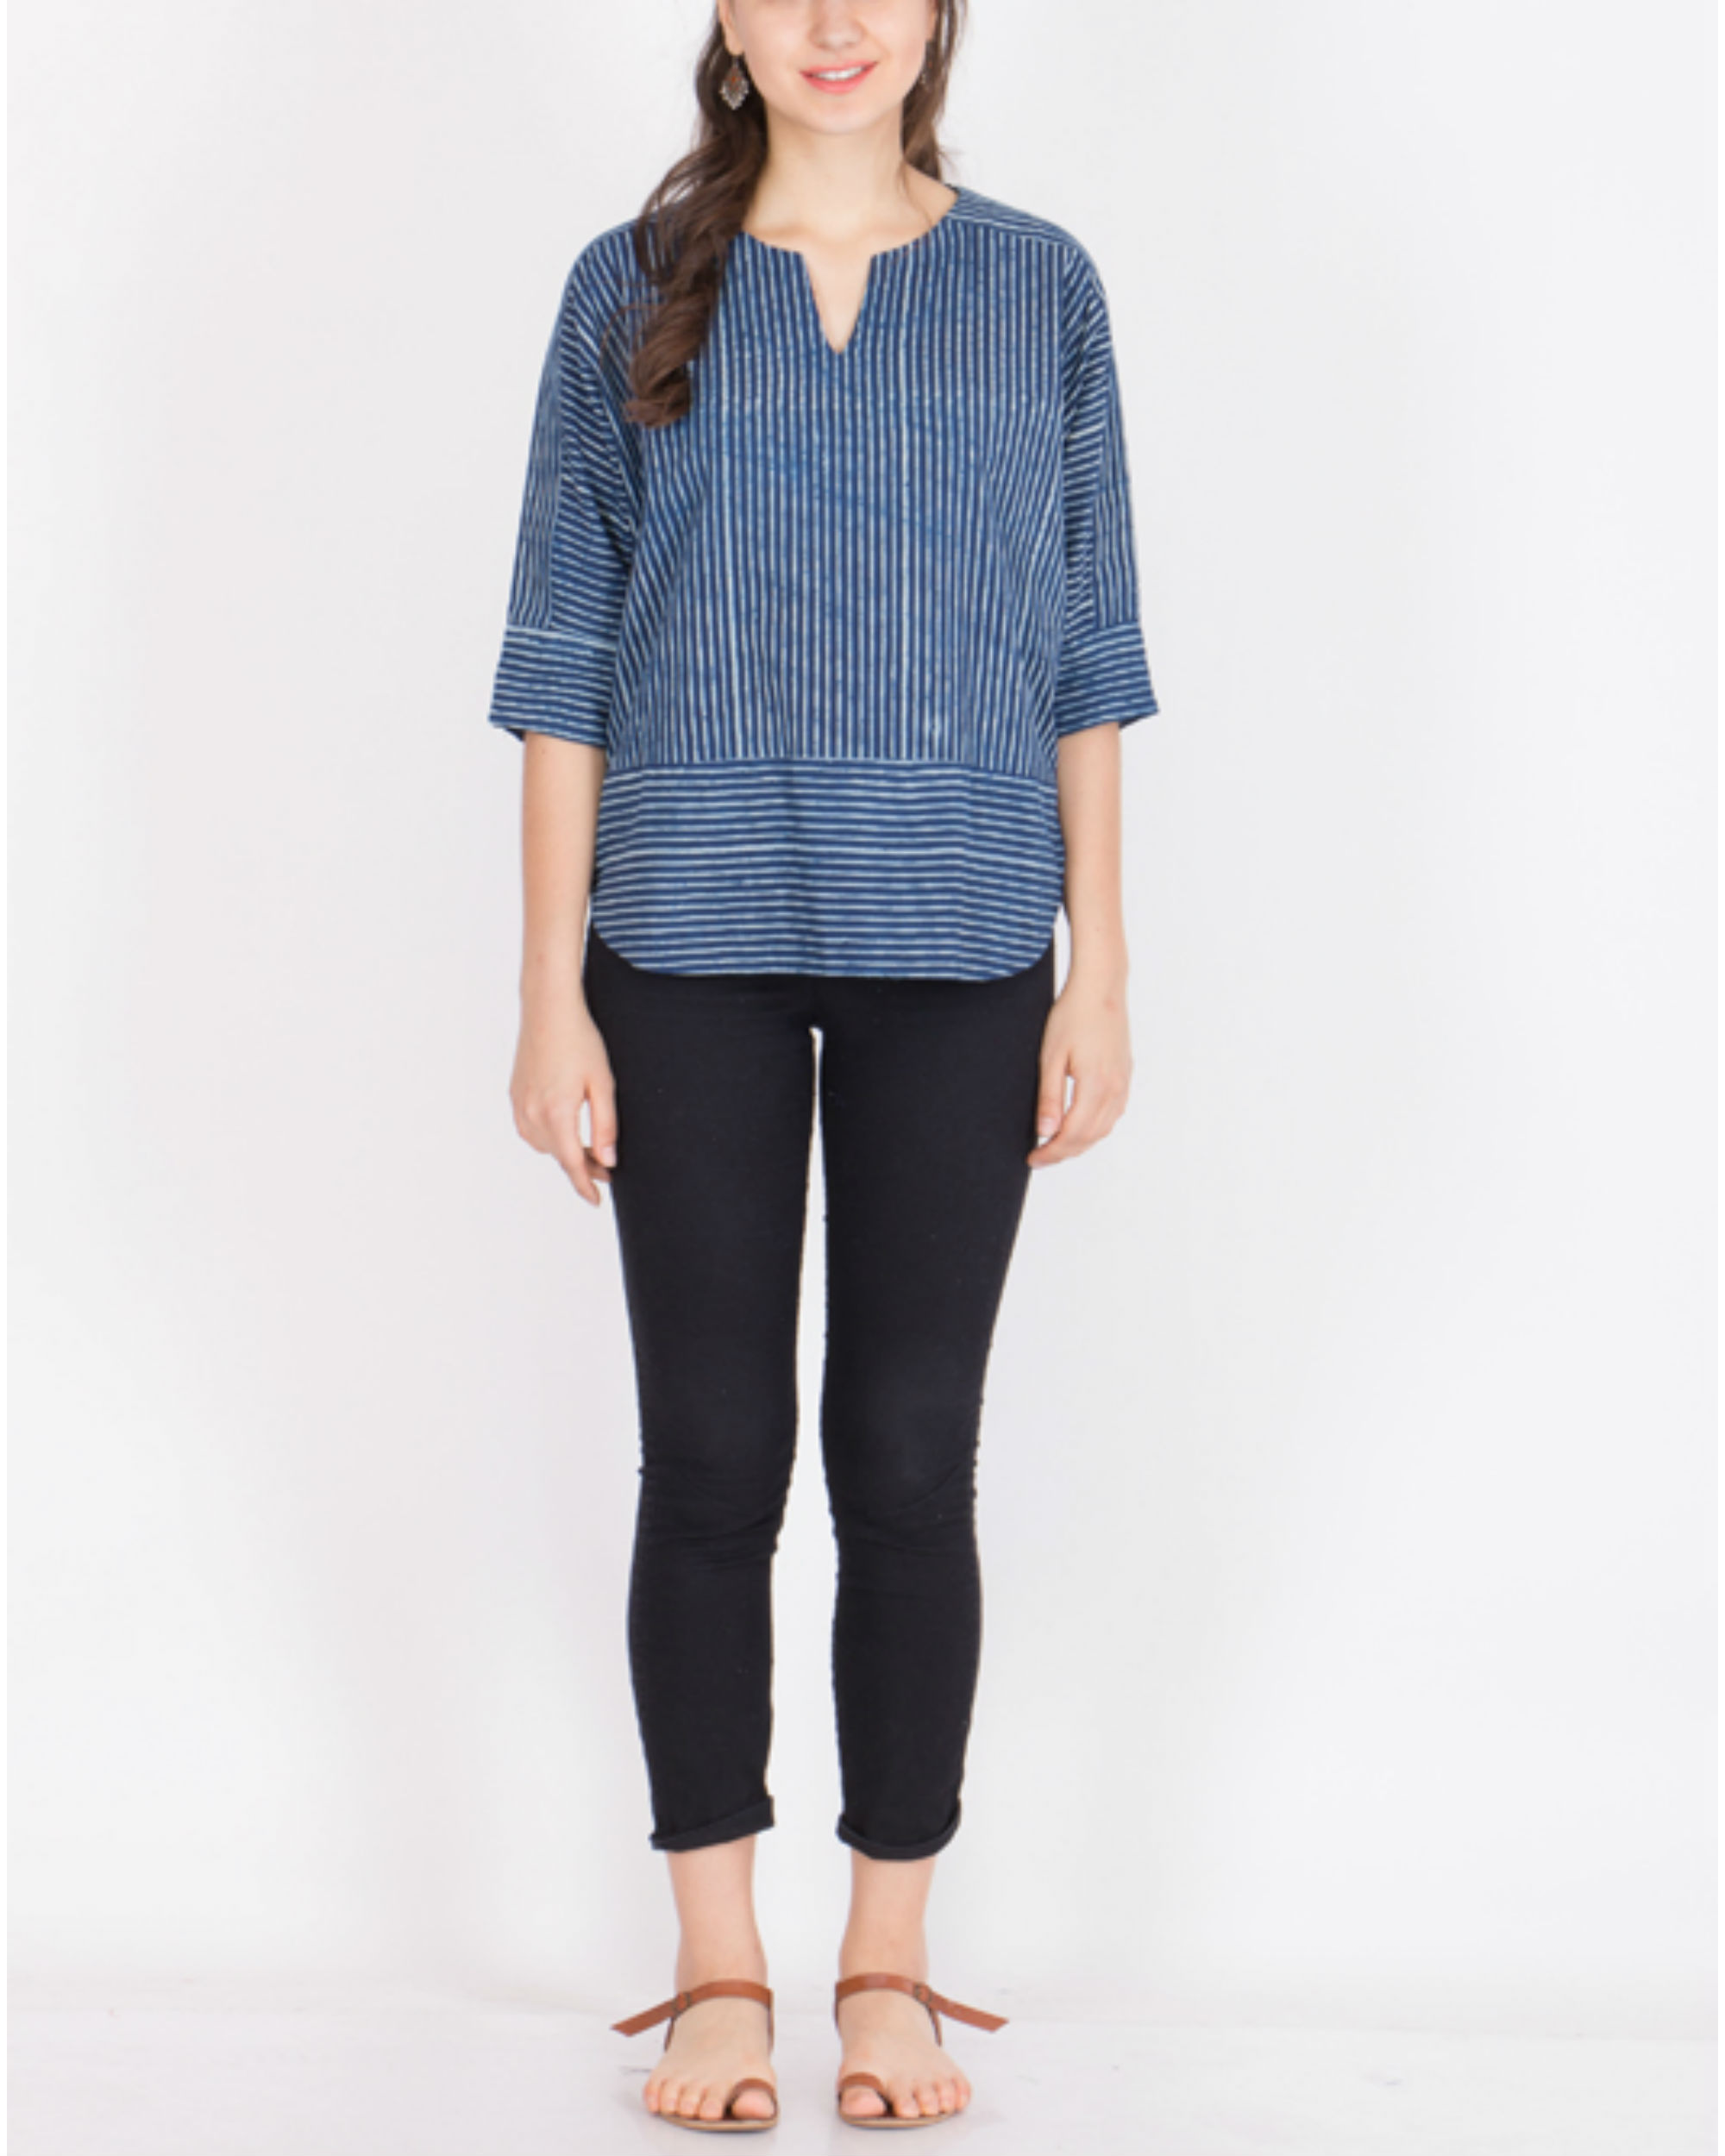 Indigo Striped summer top